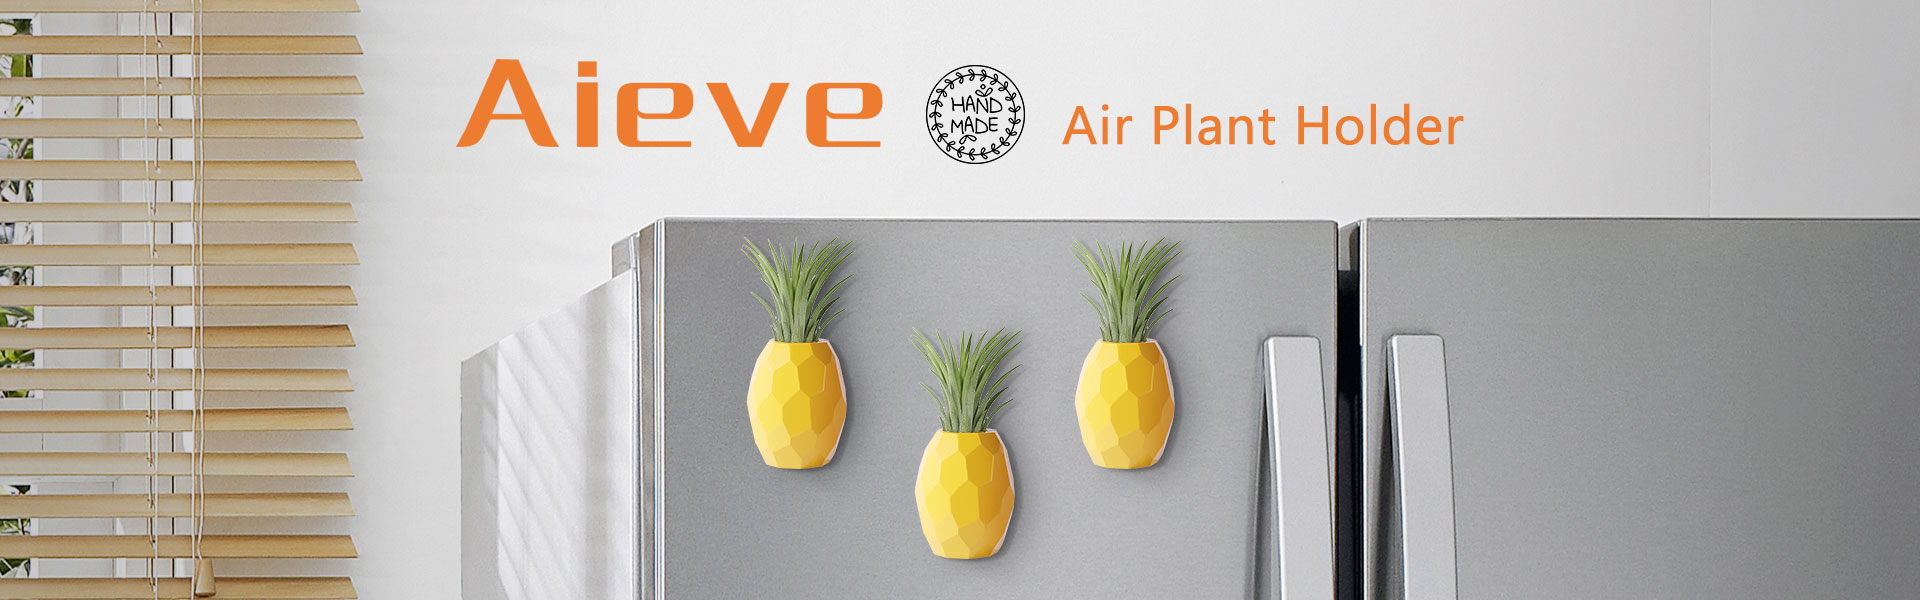 Air Plant Holder,Hanging Air Plant Holders,2 Pack Pineapple Geometric Air Plant Holder Container with Magnet for Hanging Air Plants Small Tillandsia Indoor Wall Home Décor